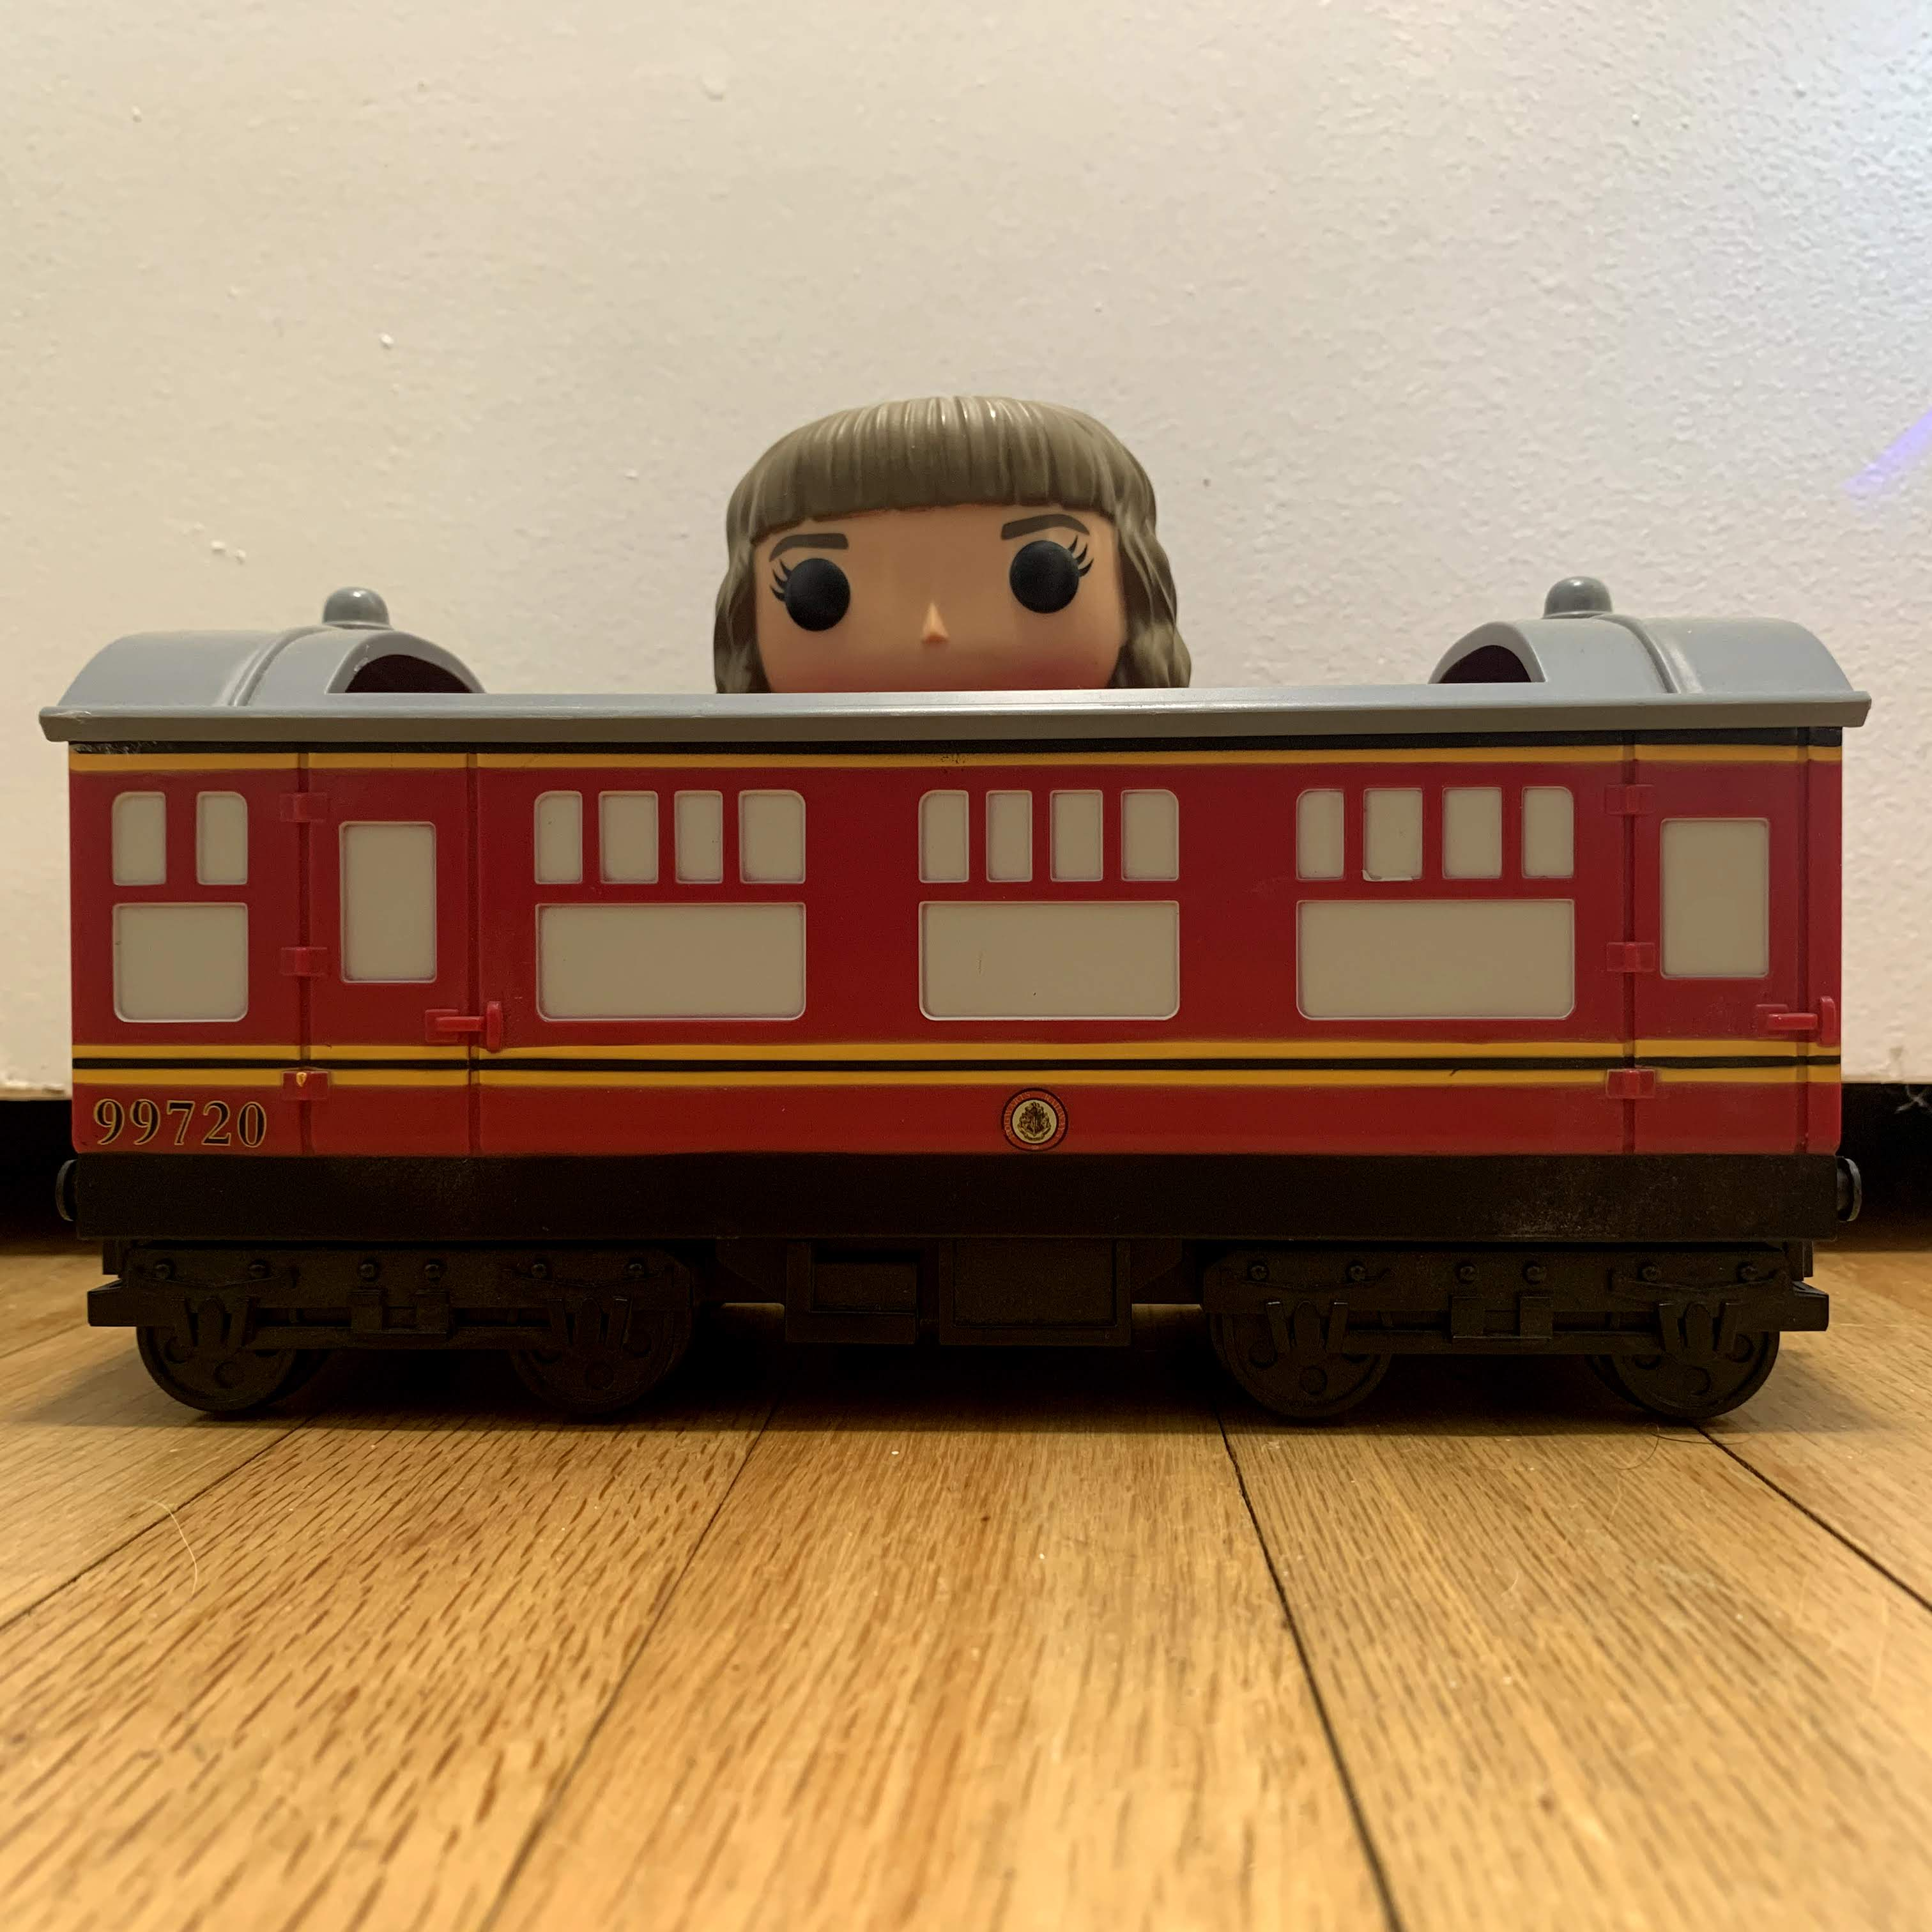 22 Hogwarts Express Carriage with Hermione Granger